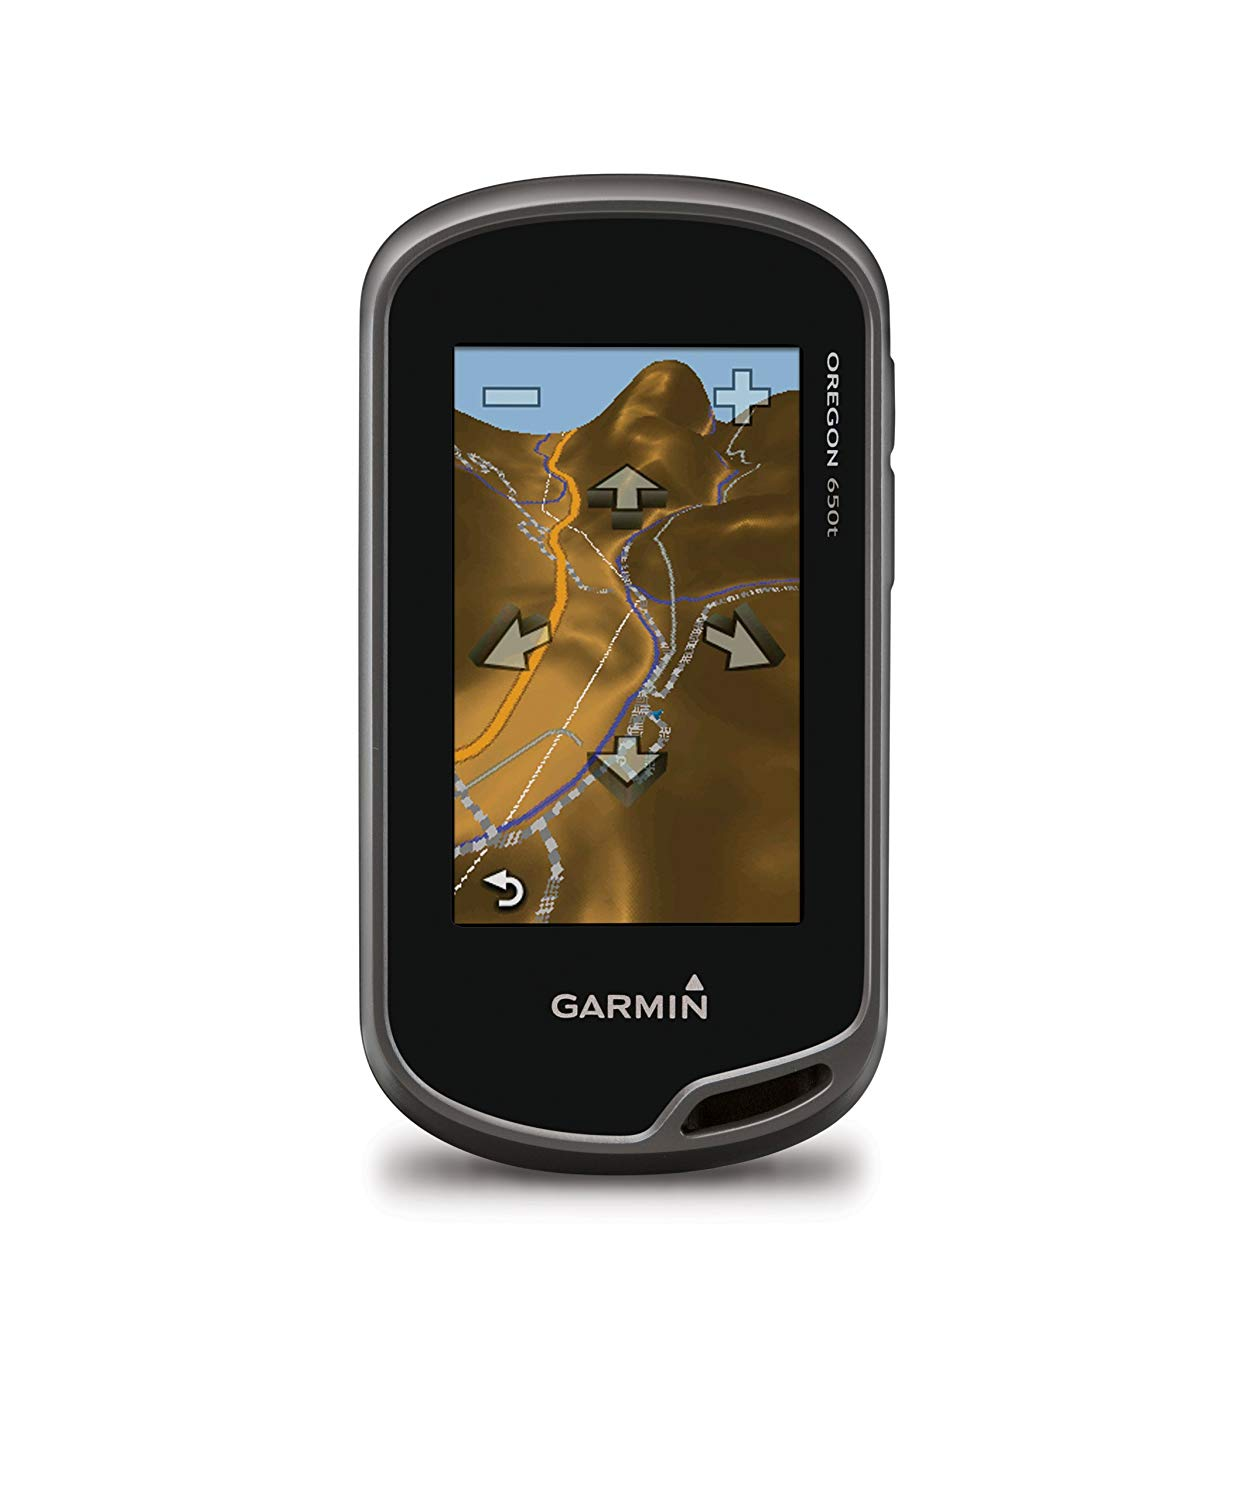 Top 10 Best Handheld GPS For Hunting & Fishing 2020 Reviews 10